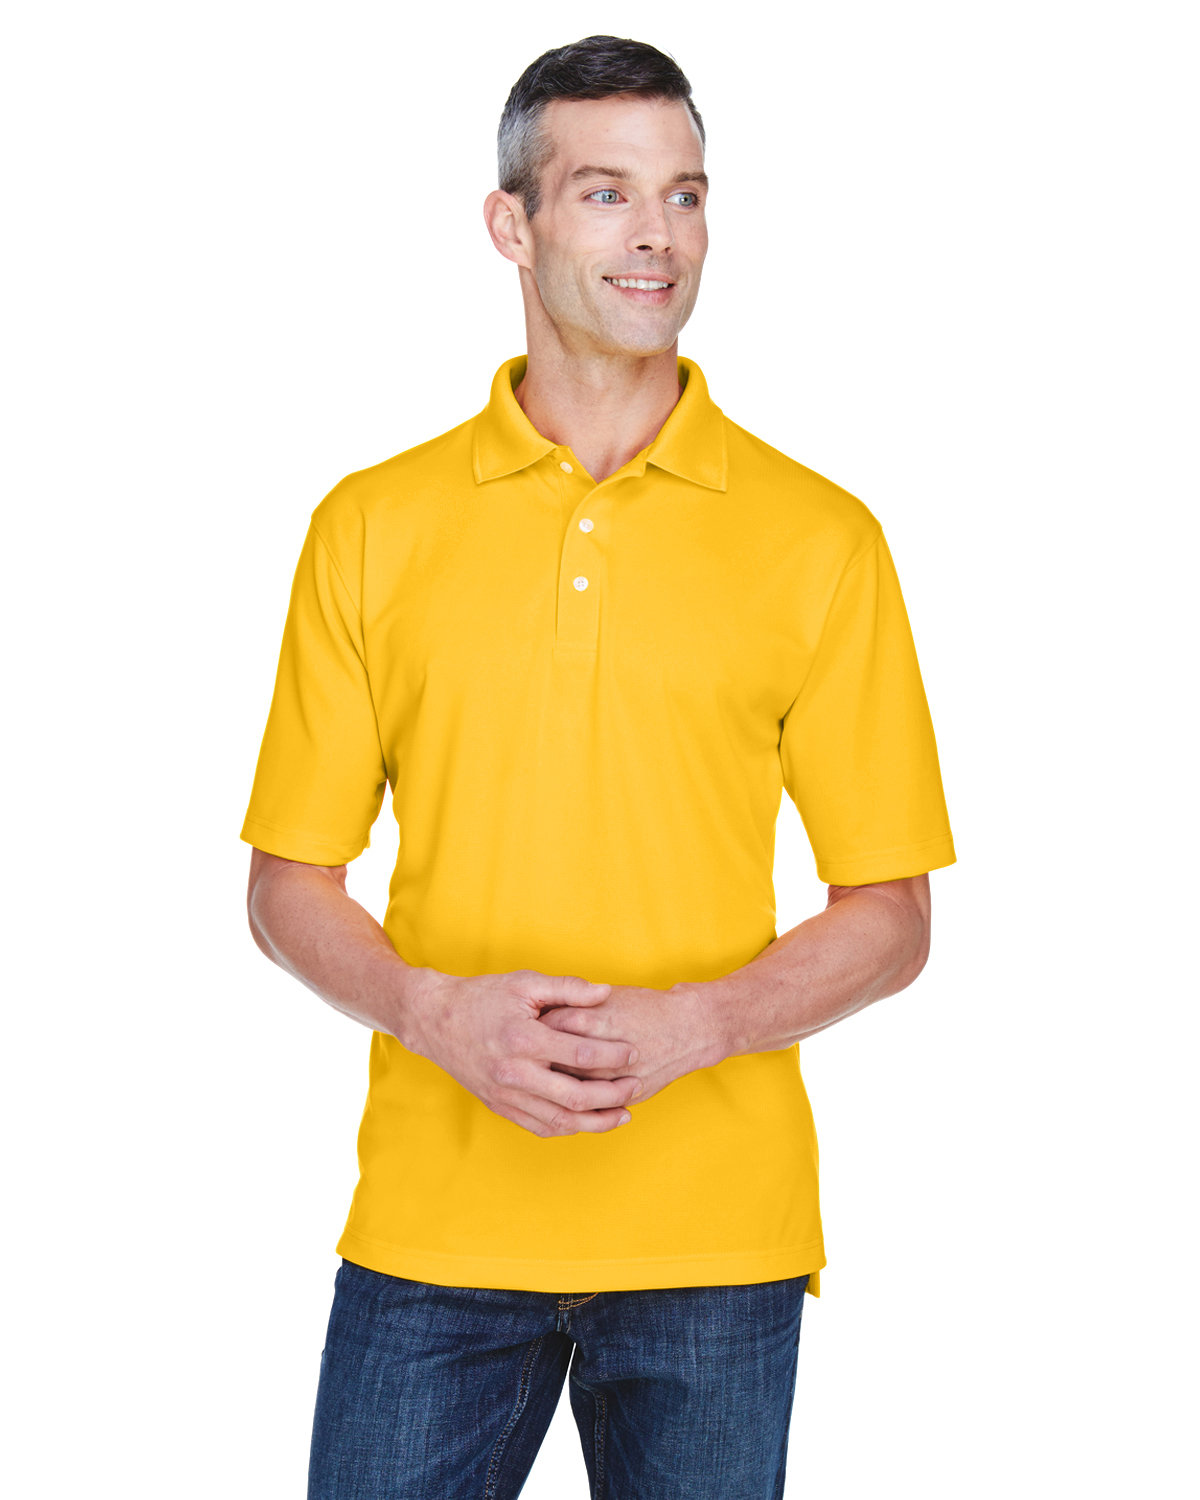 UltraClub Men's Cool & Dry Stain-Release Performance Polo GOLD